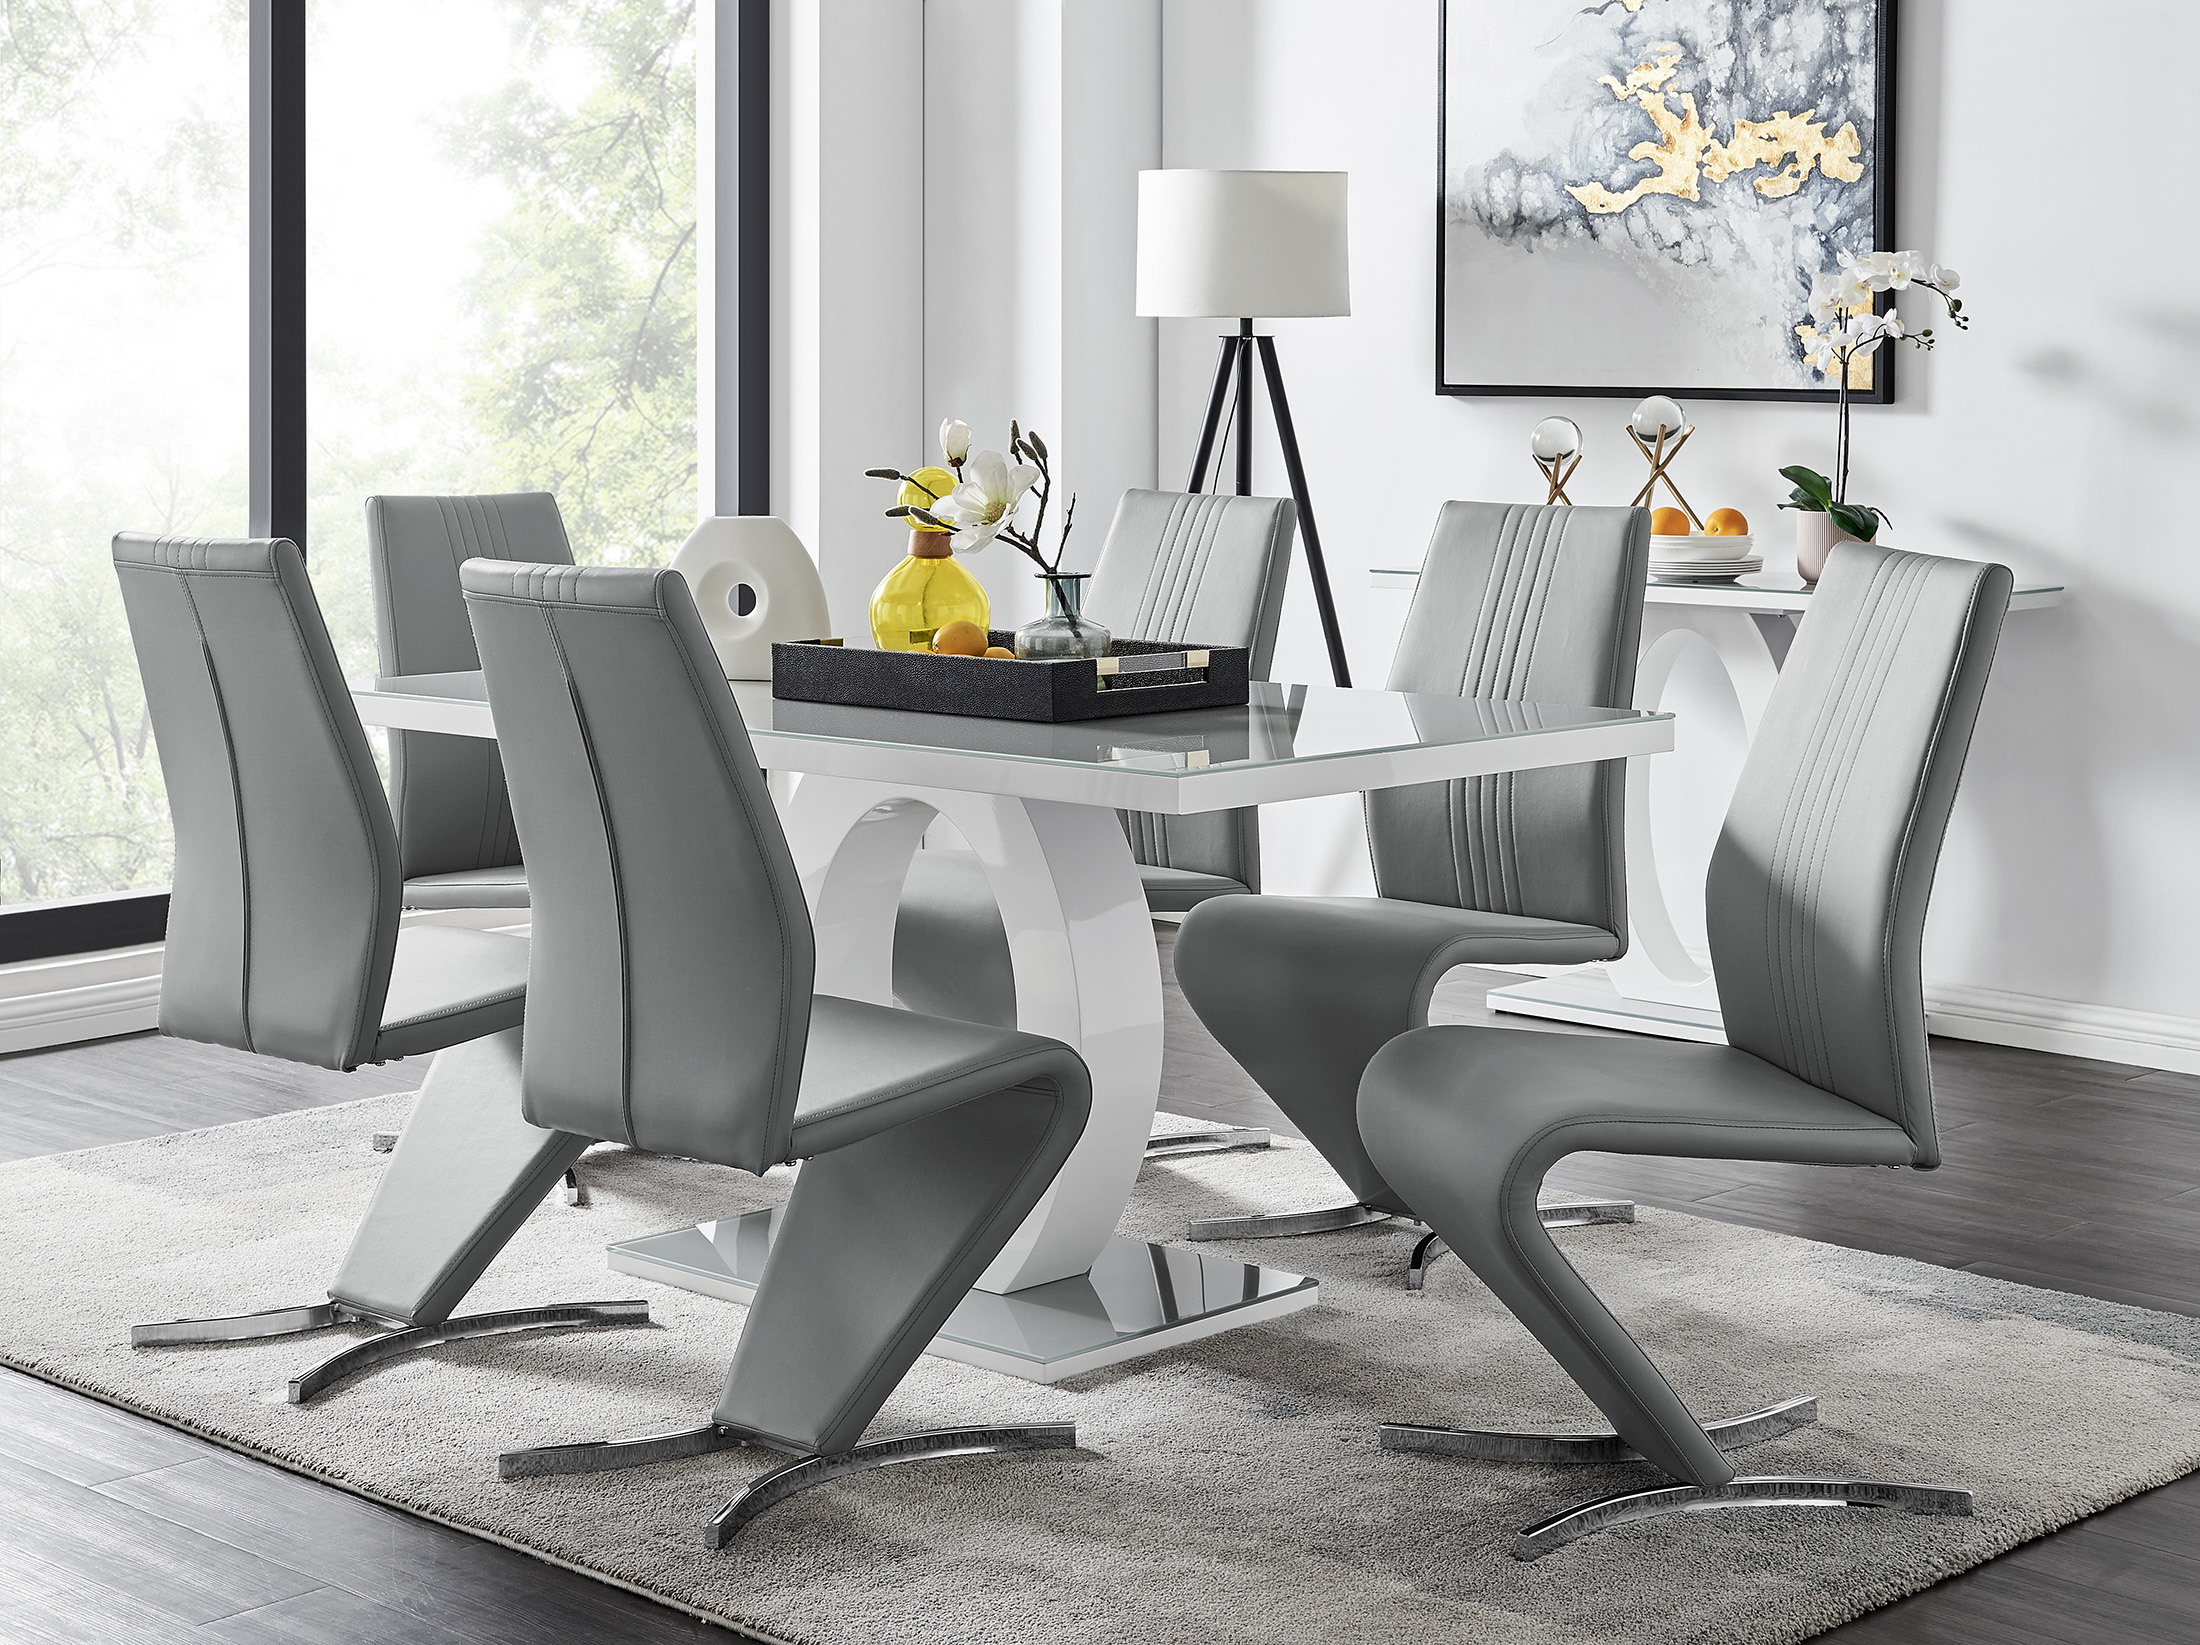 Grey White High Gloss Dining Table, Grey And White Dining Room Table With Bench